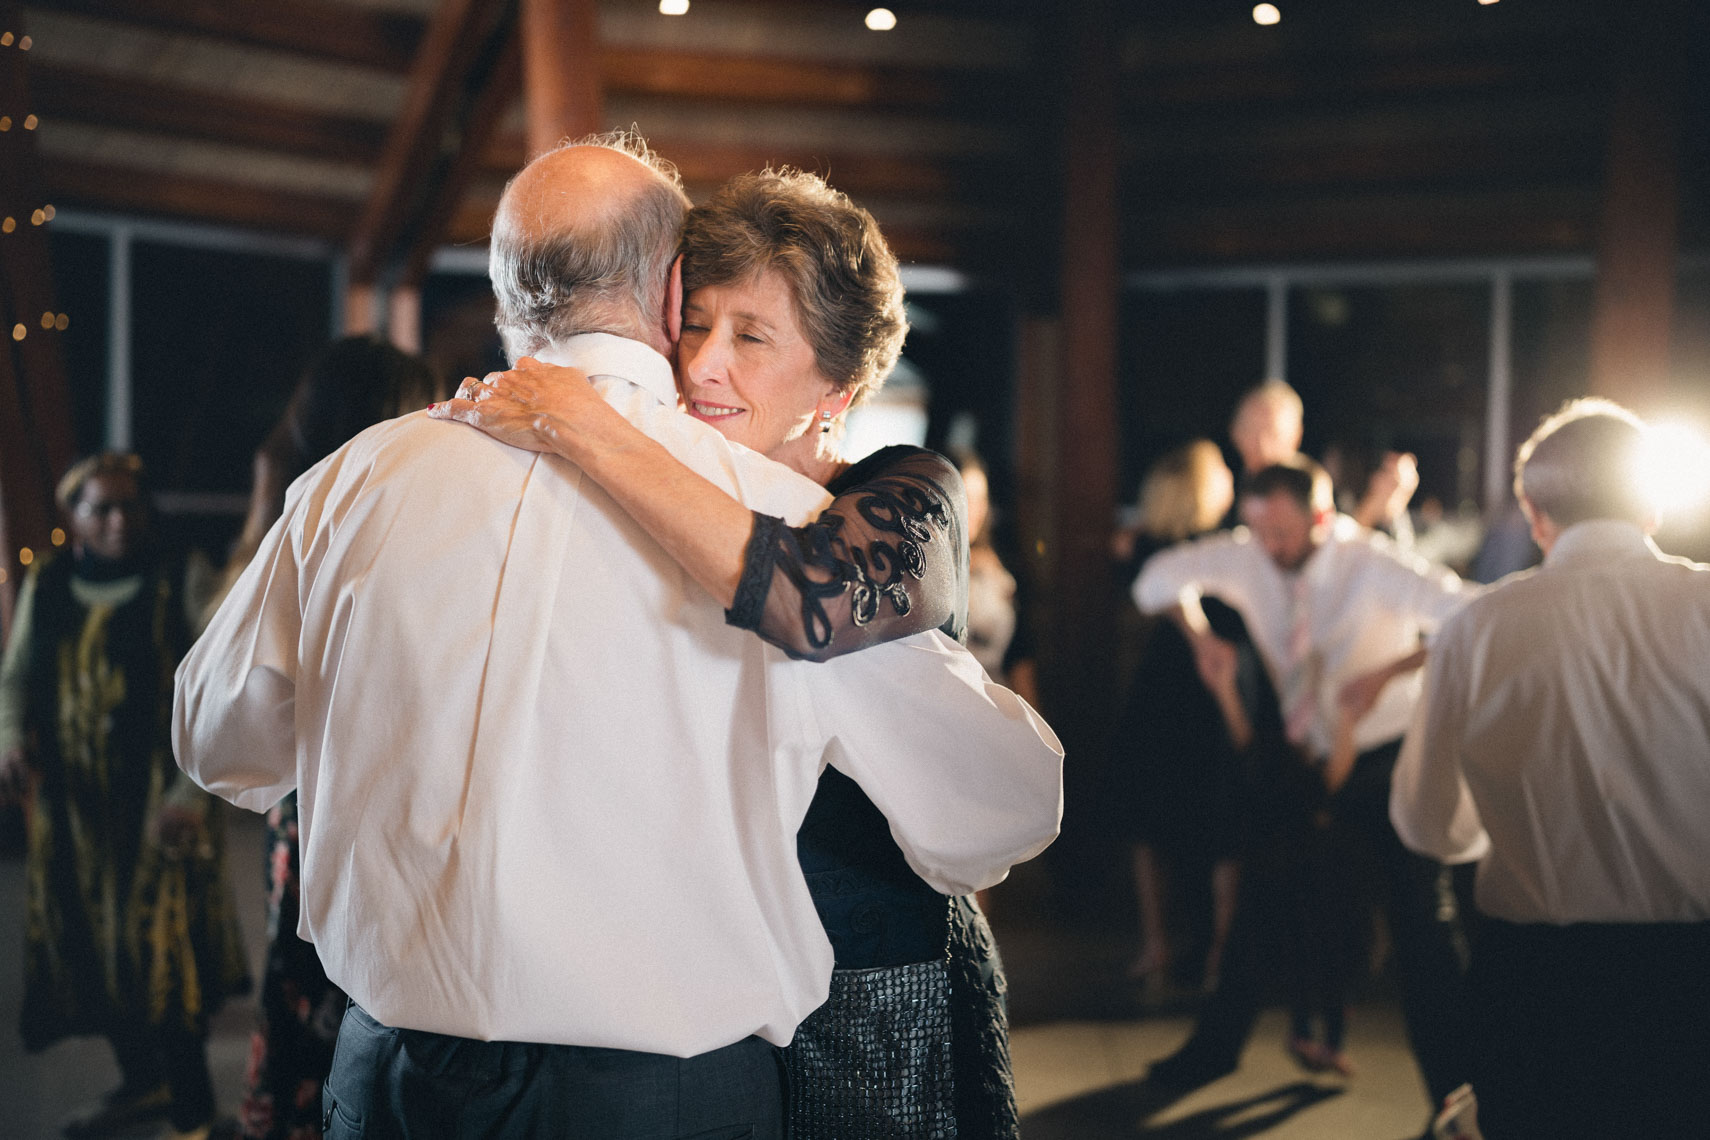 Parents of the bride dance at wedding at the SLCC venue in Whistler.